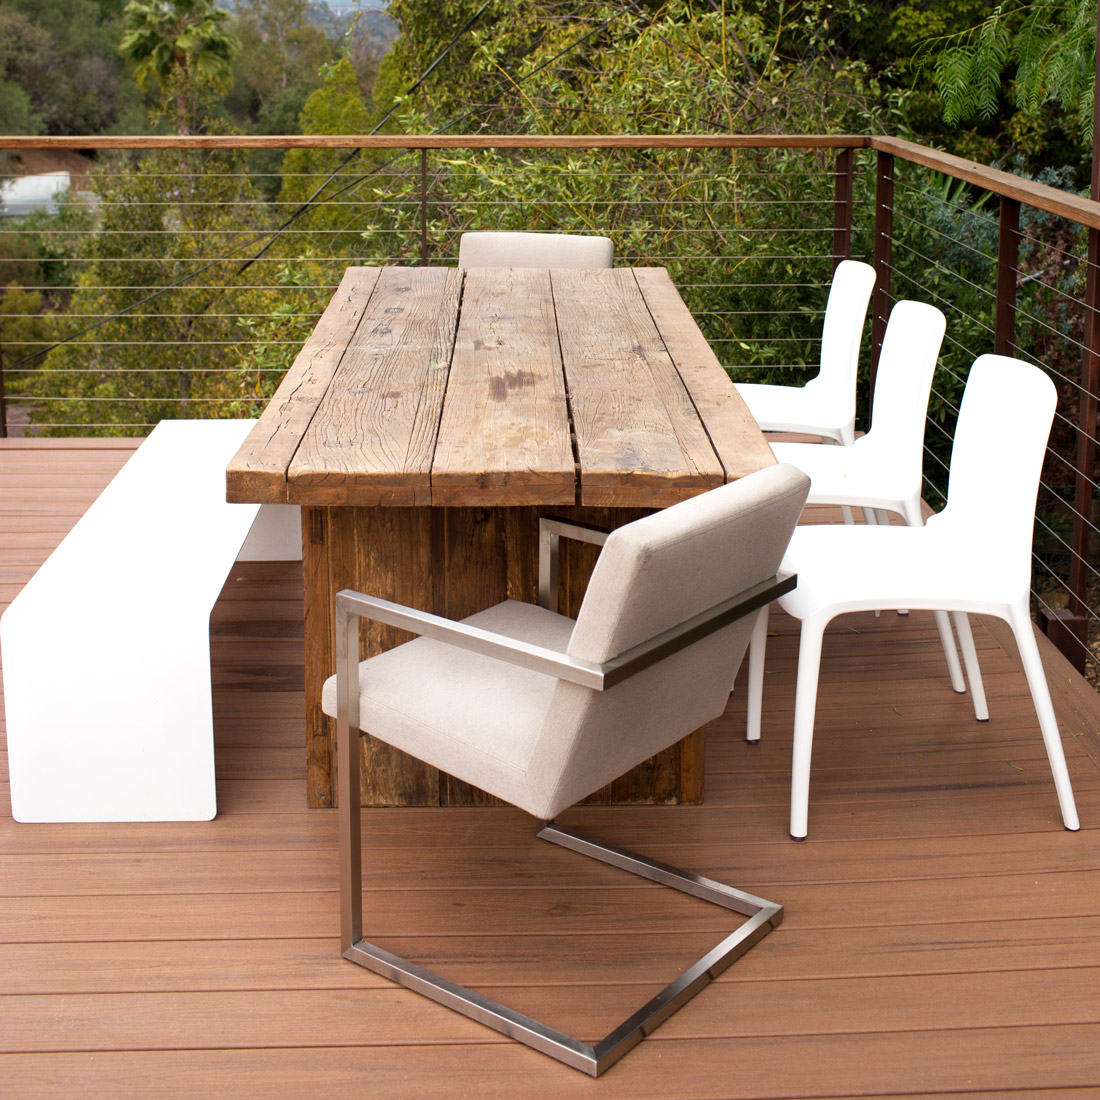 outdoor dining set with white plastic chairs and bench and metal frame upholstered chairs and rustic reclaimed wood dining table design by sara bates interior design